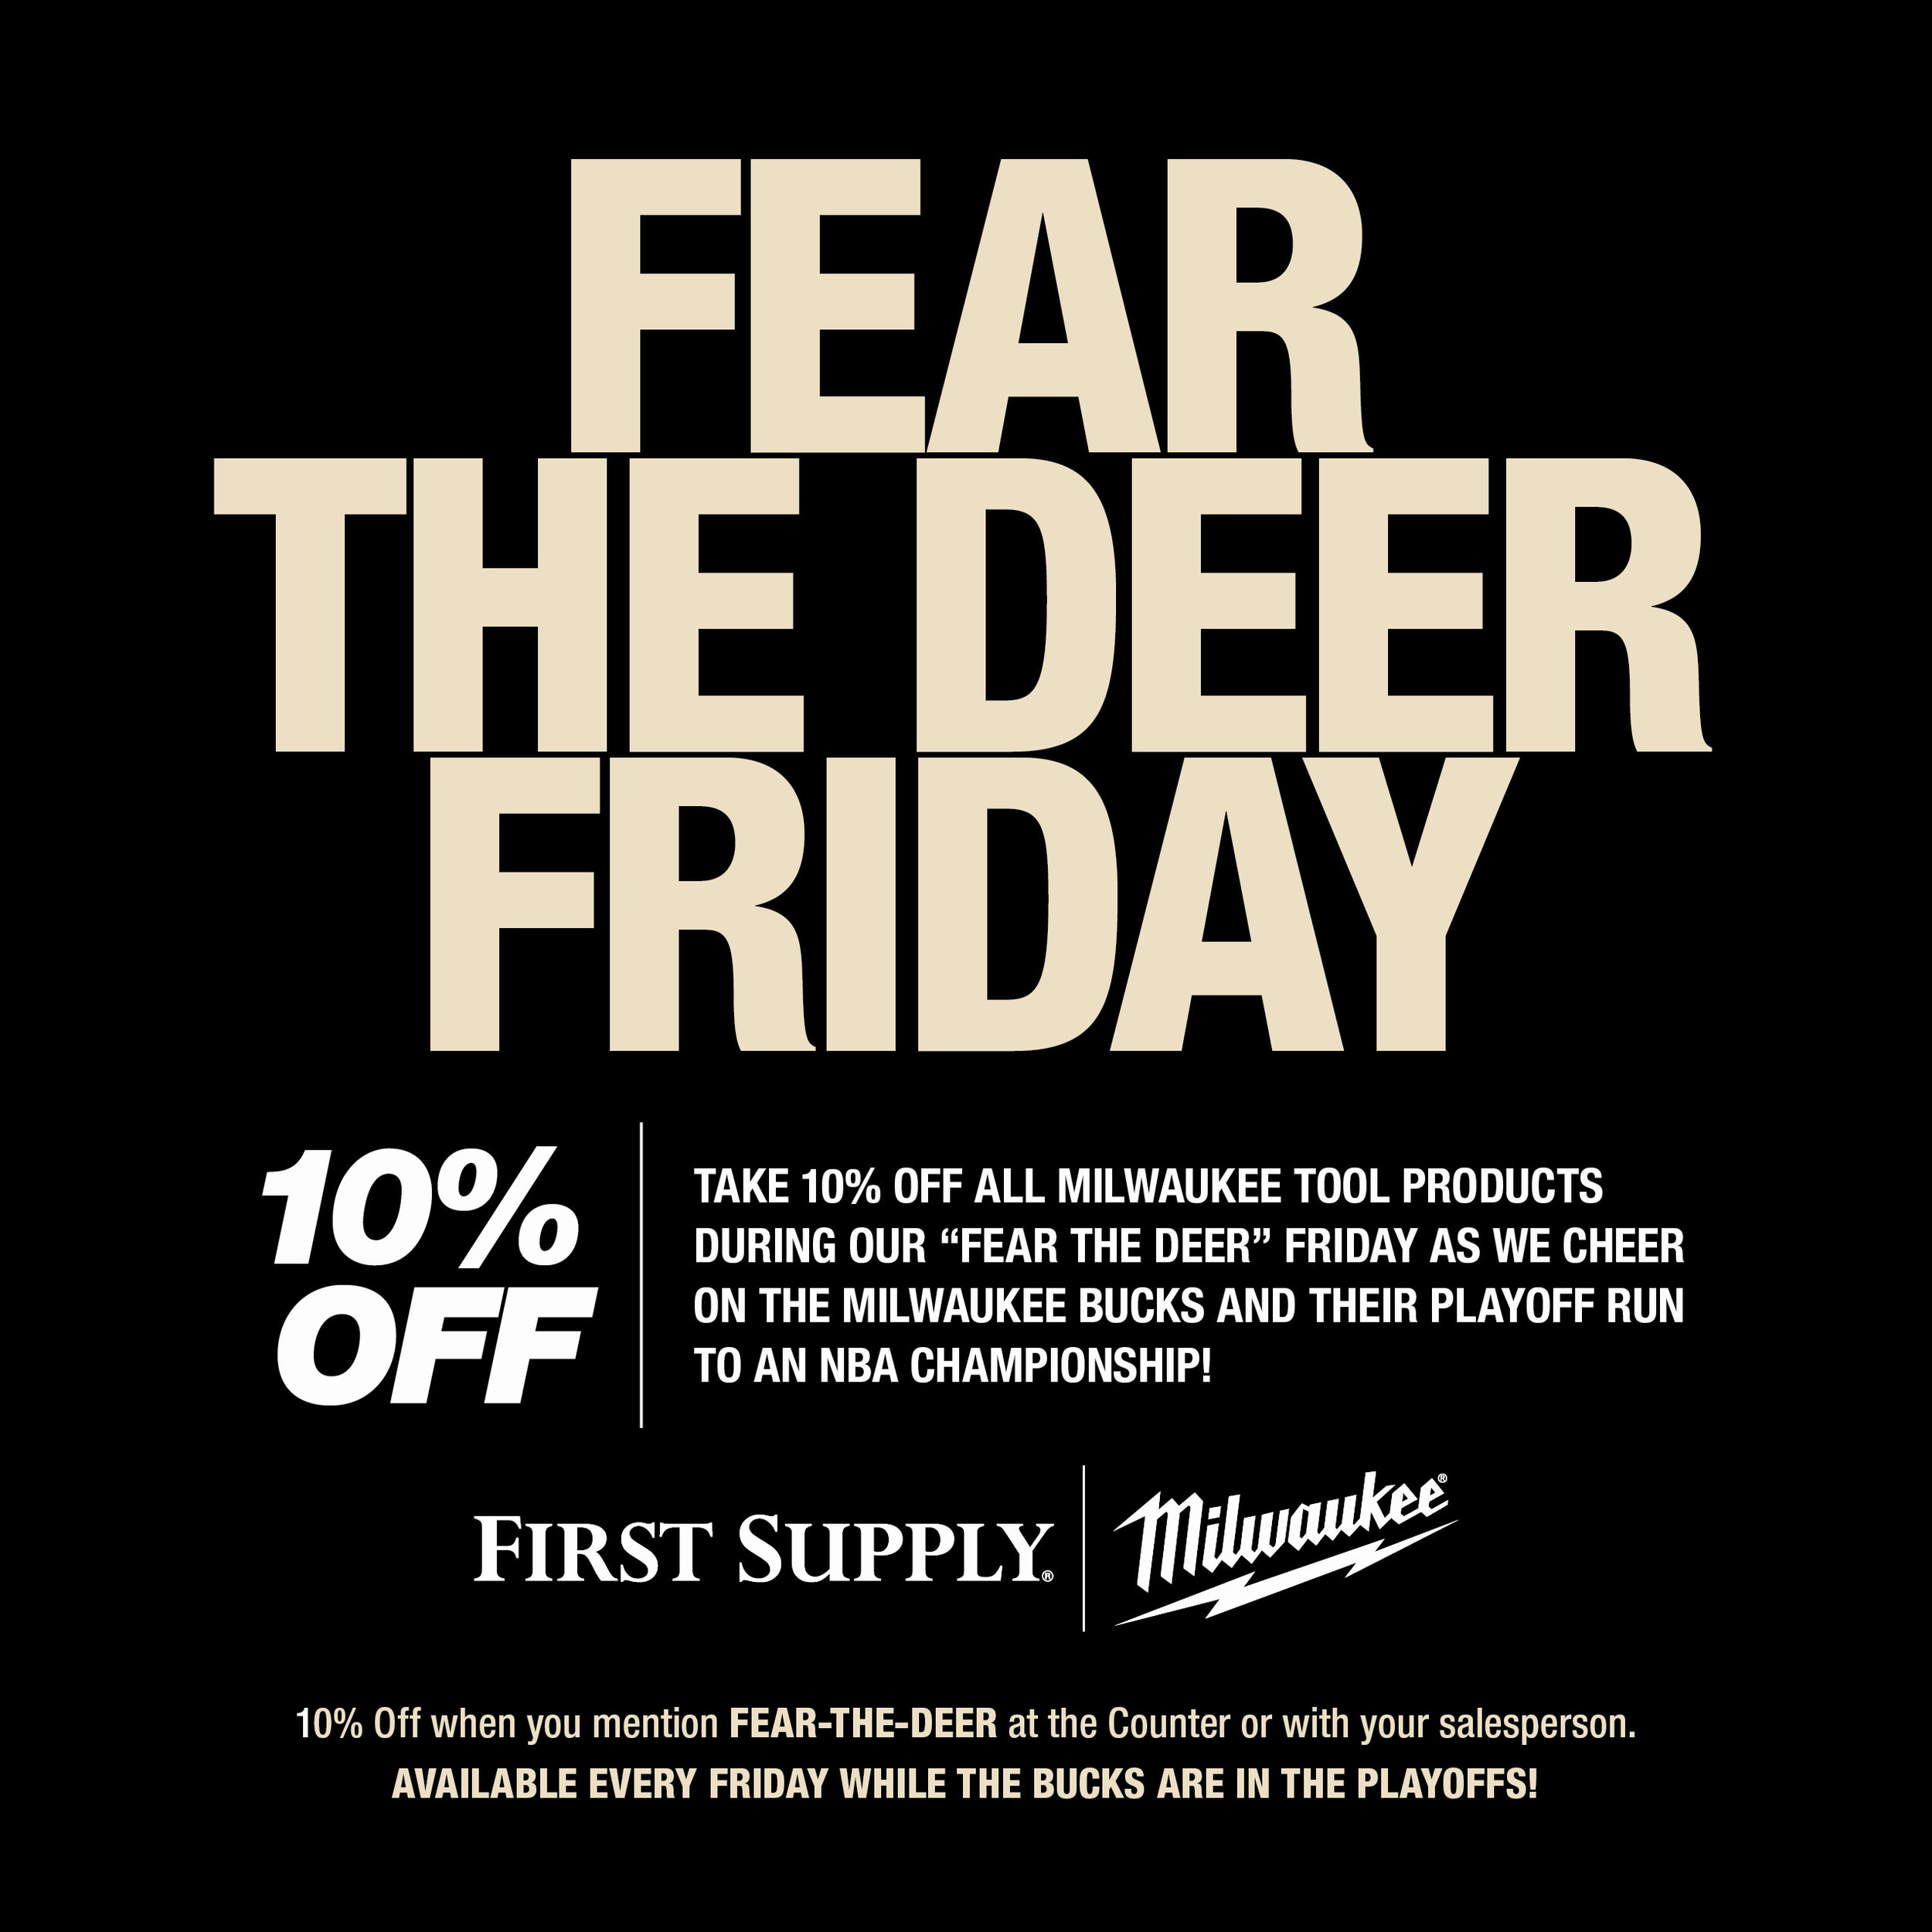 FIrst-Supply-Fear-the-Deer-Friday-03.jpg